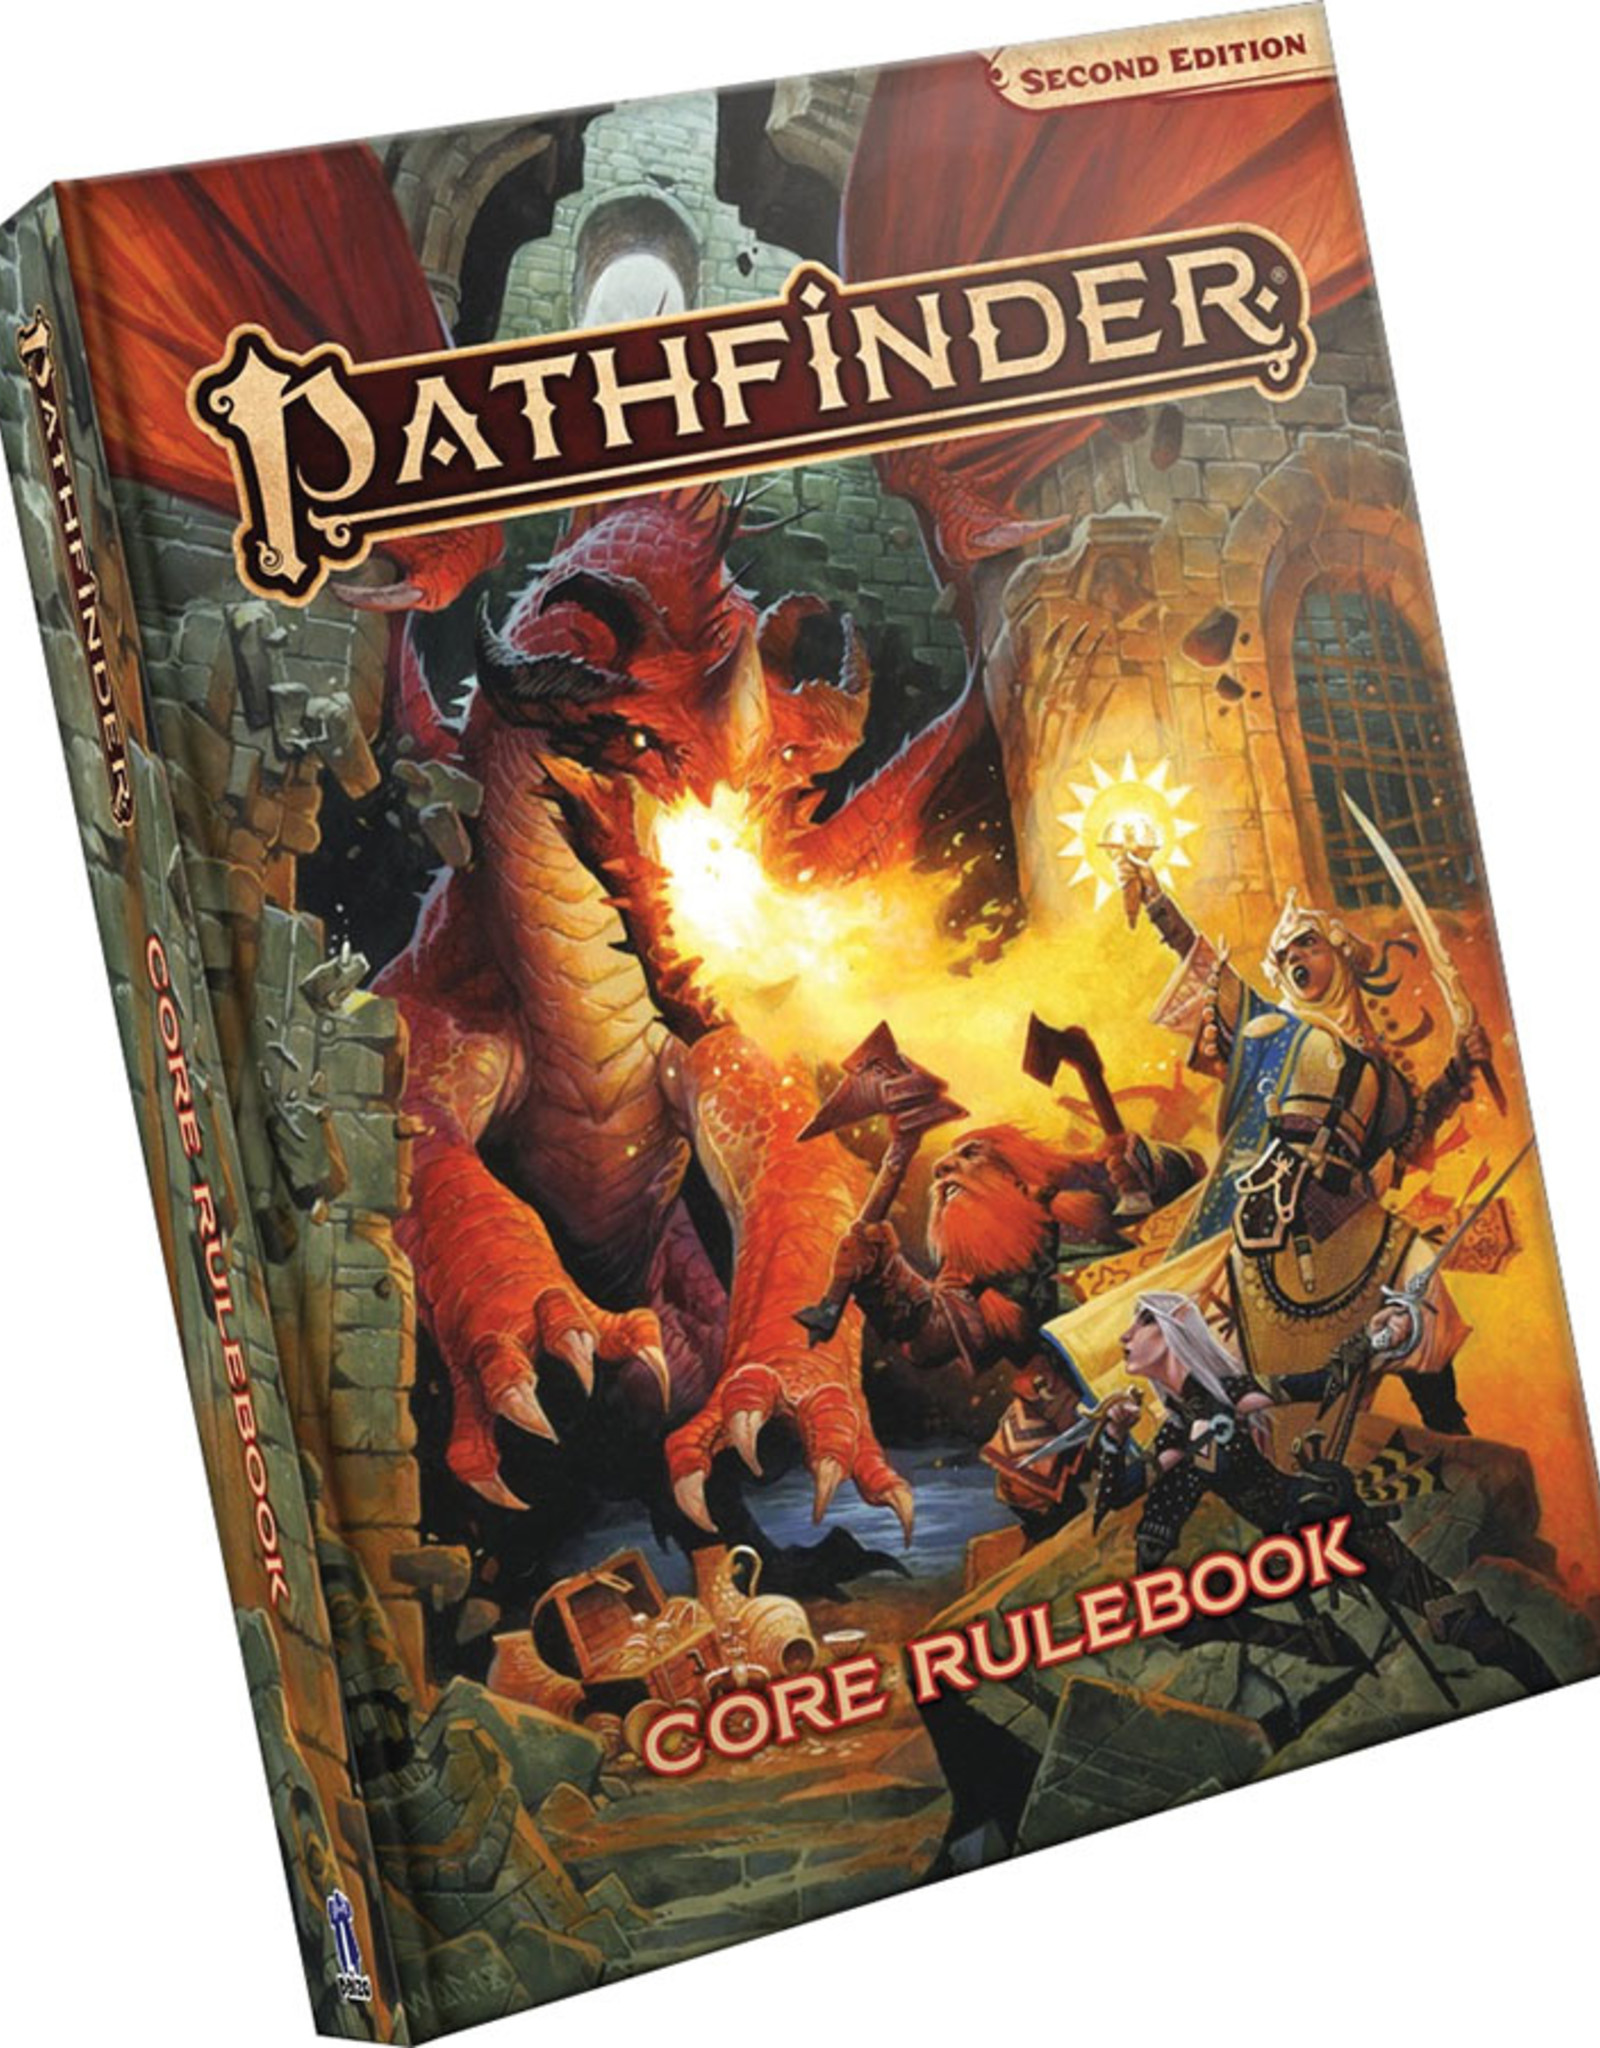 Pathfinder RPG: Core Rulebook Hardcover Second Edition